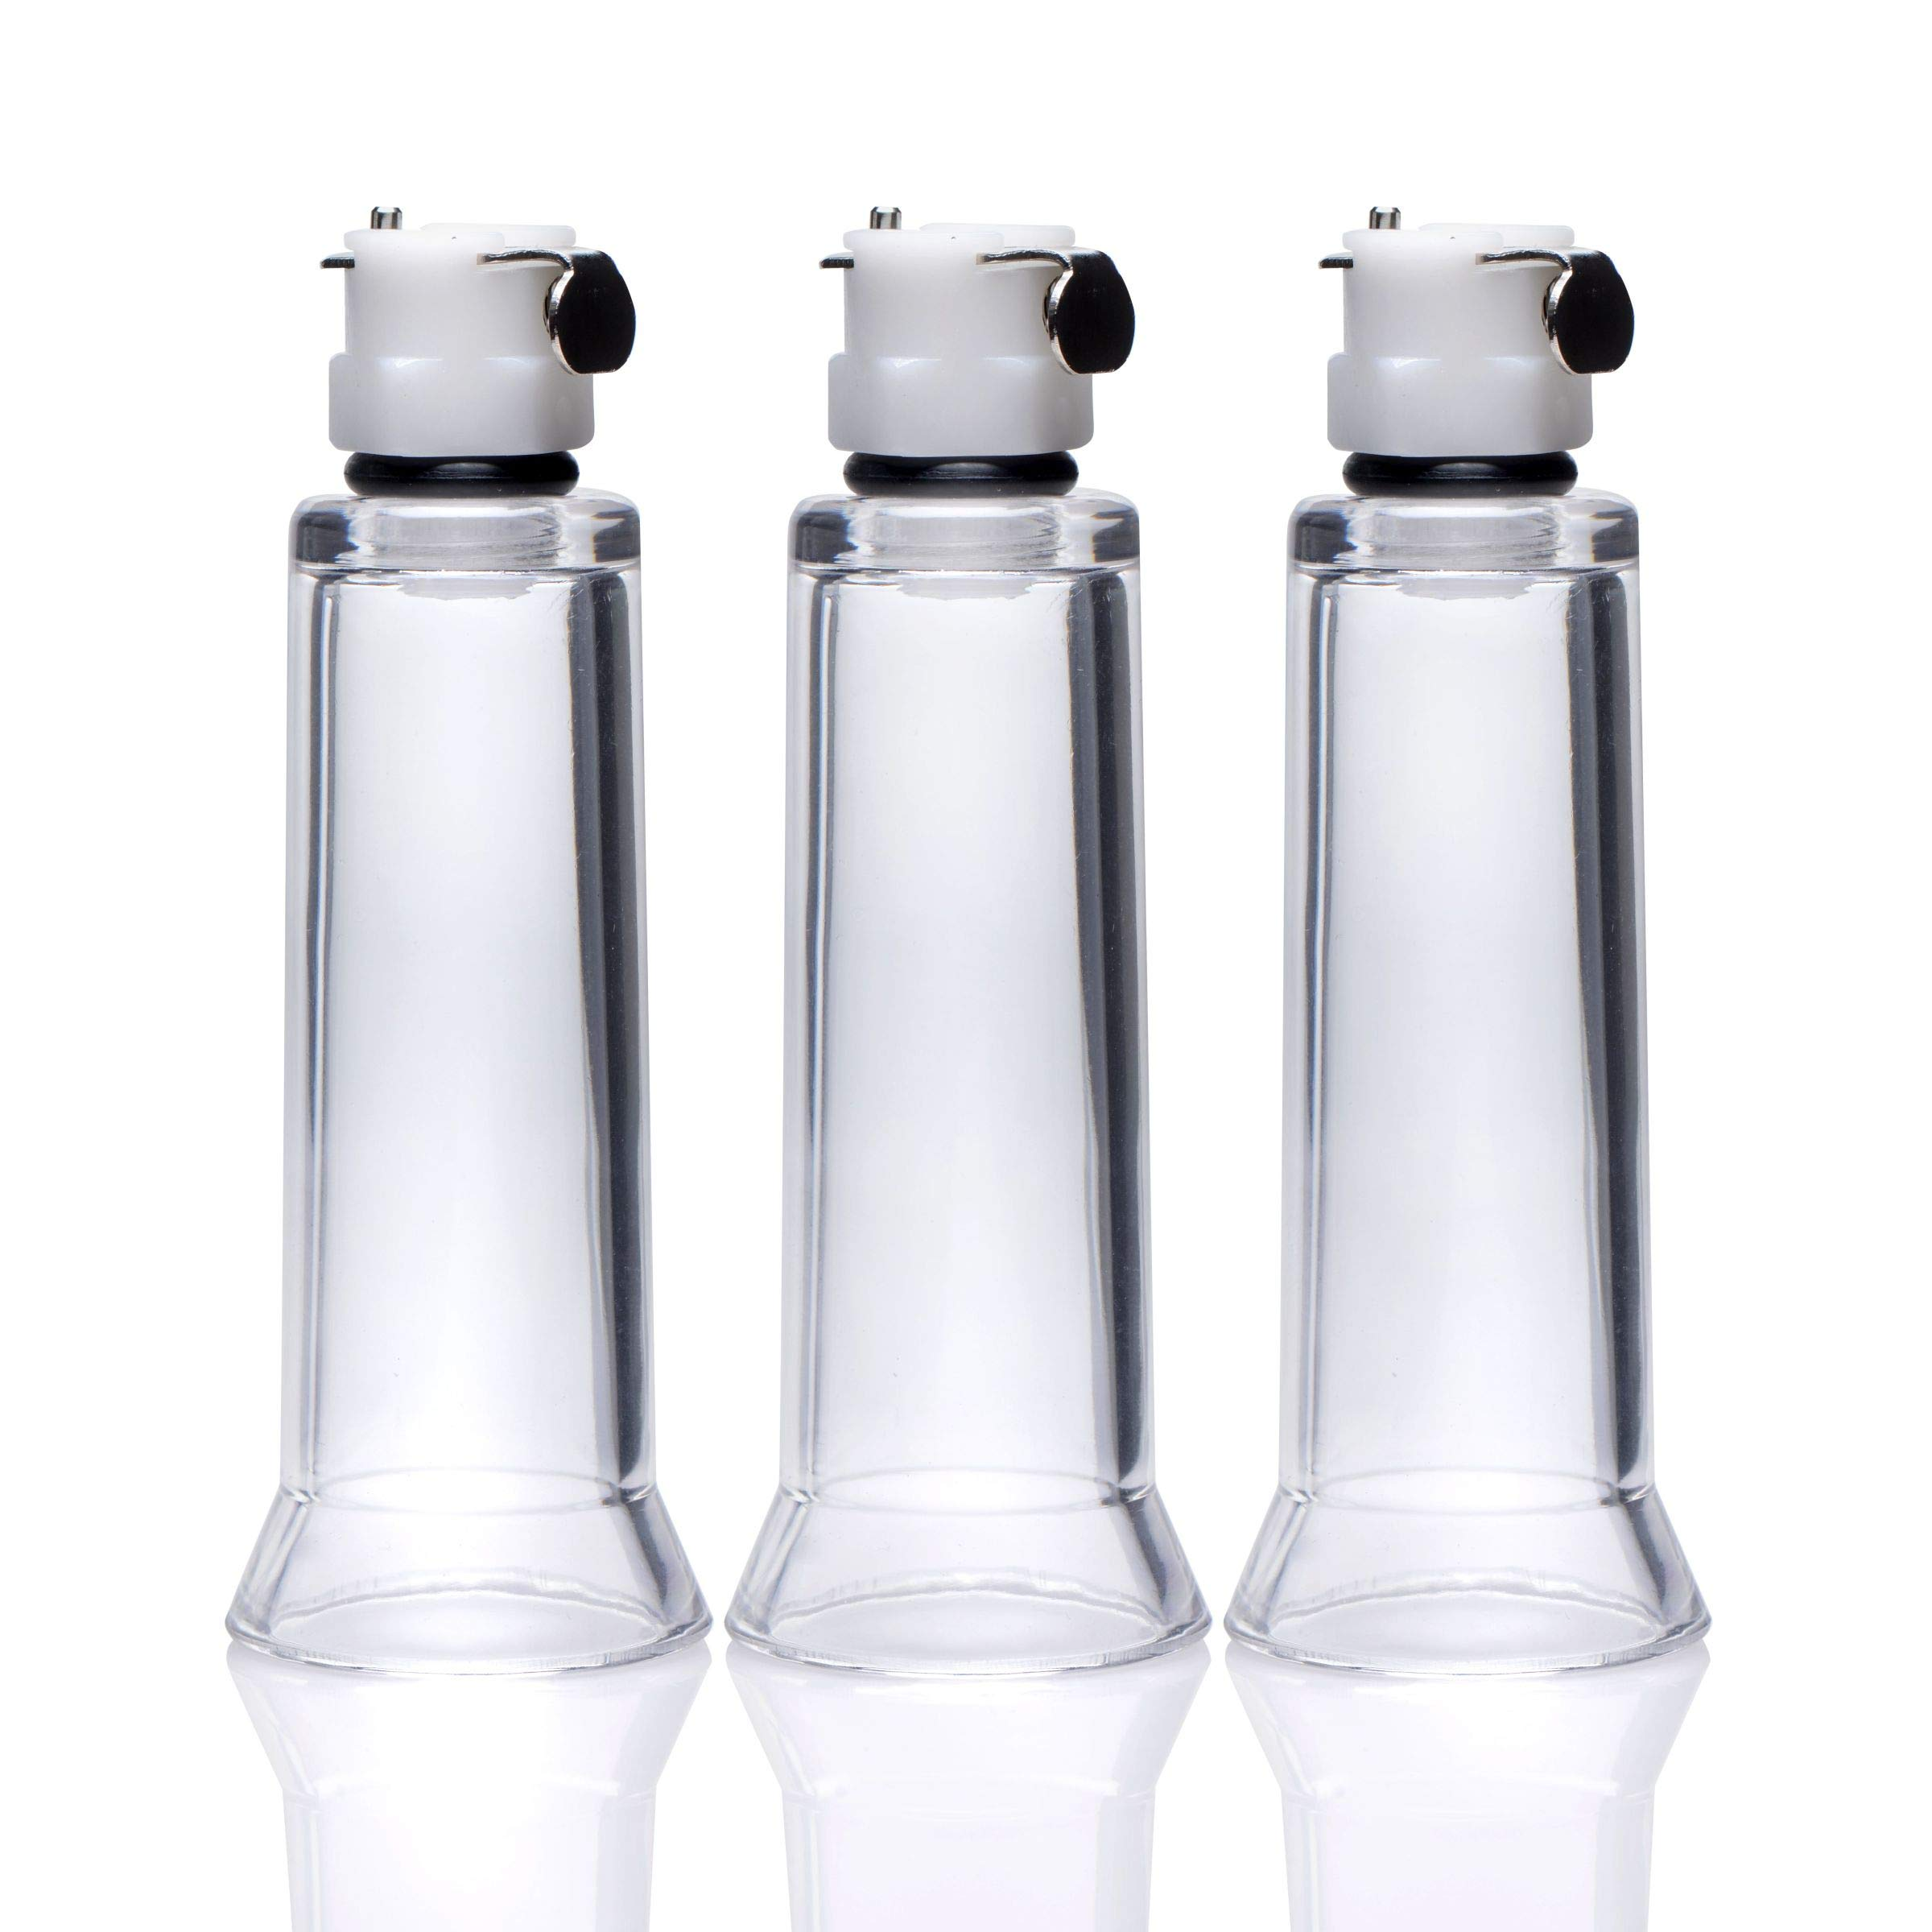 Size Matters Clit and Nipple Cylinders 3 Piece Set